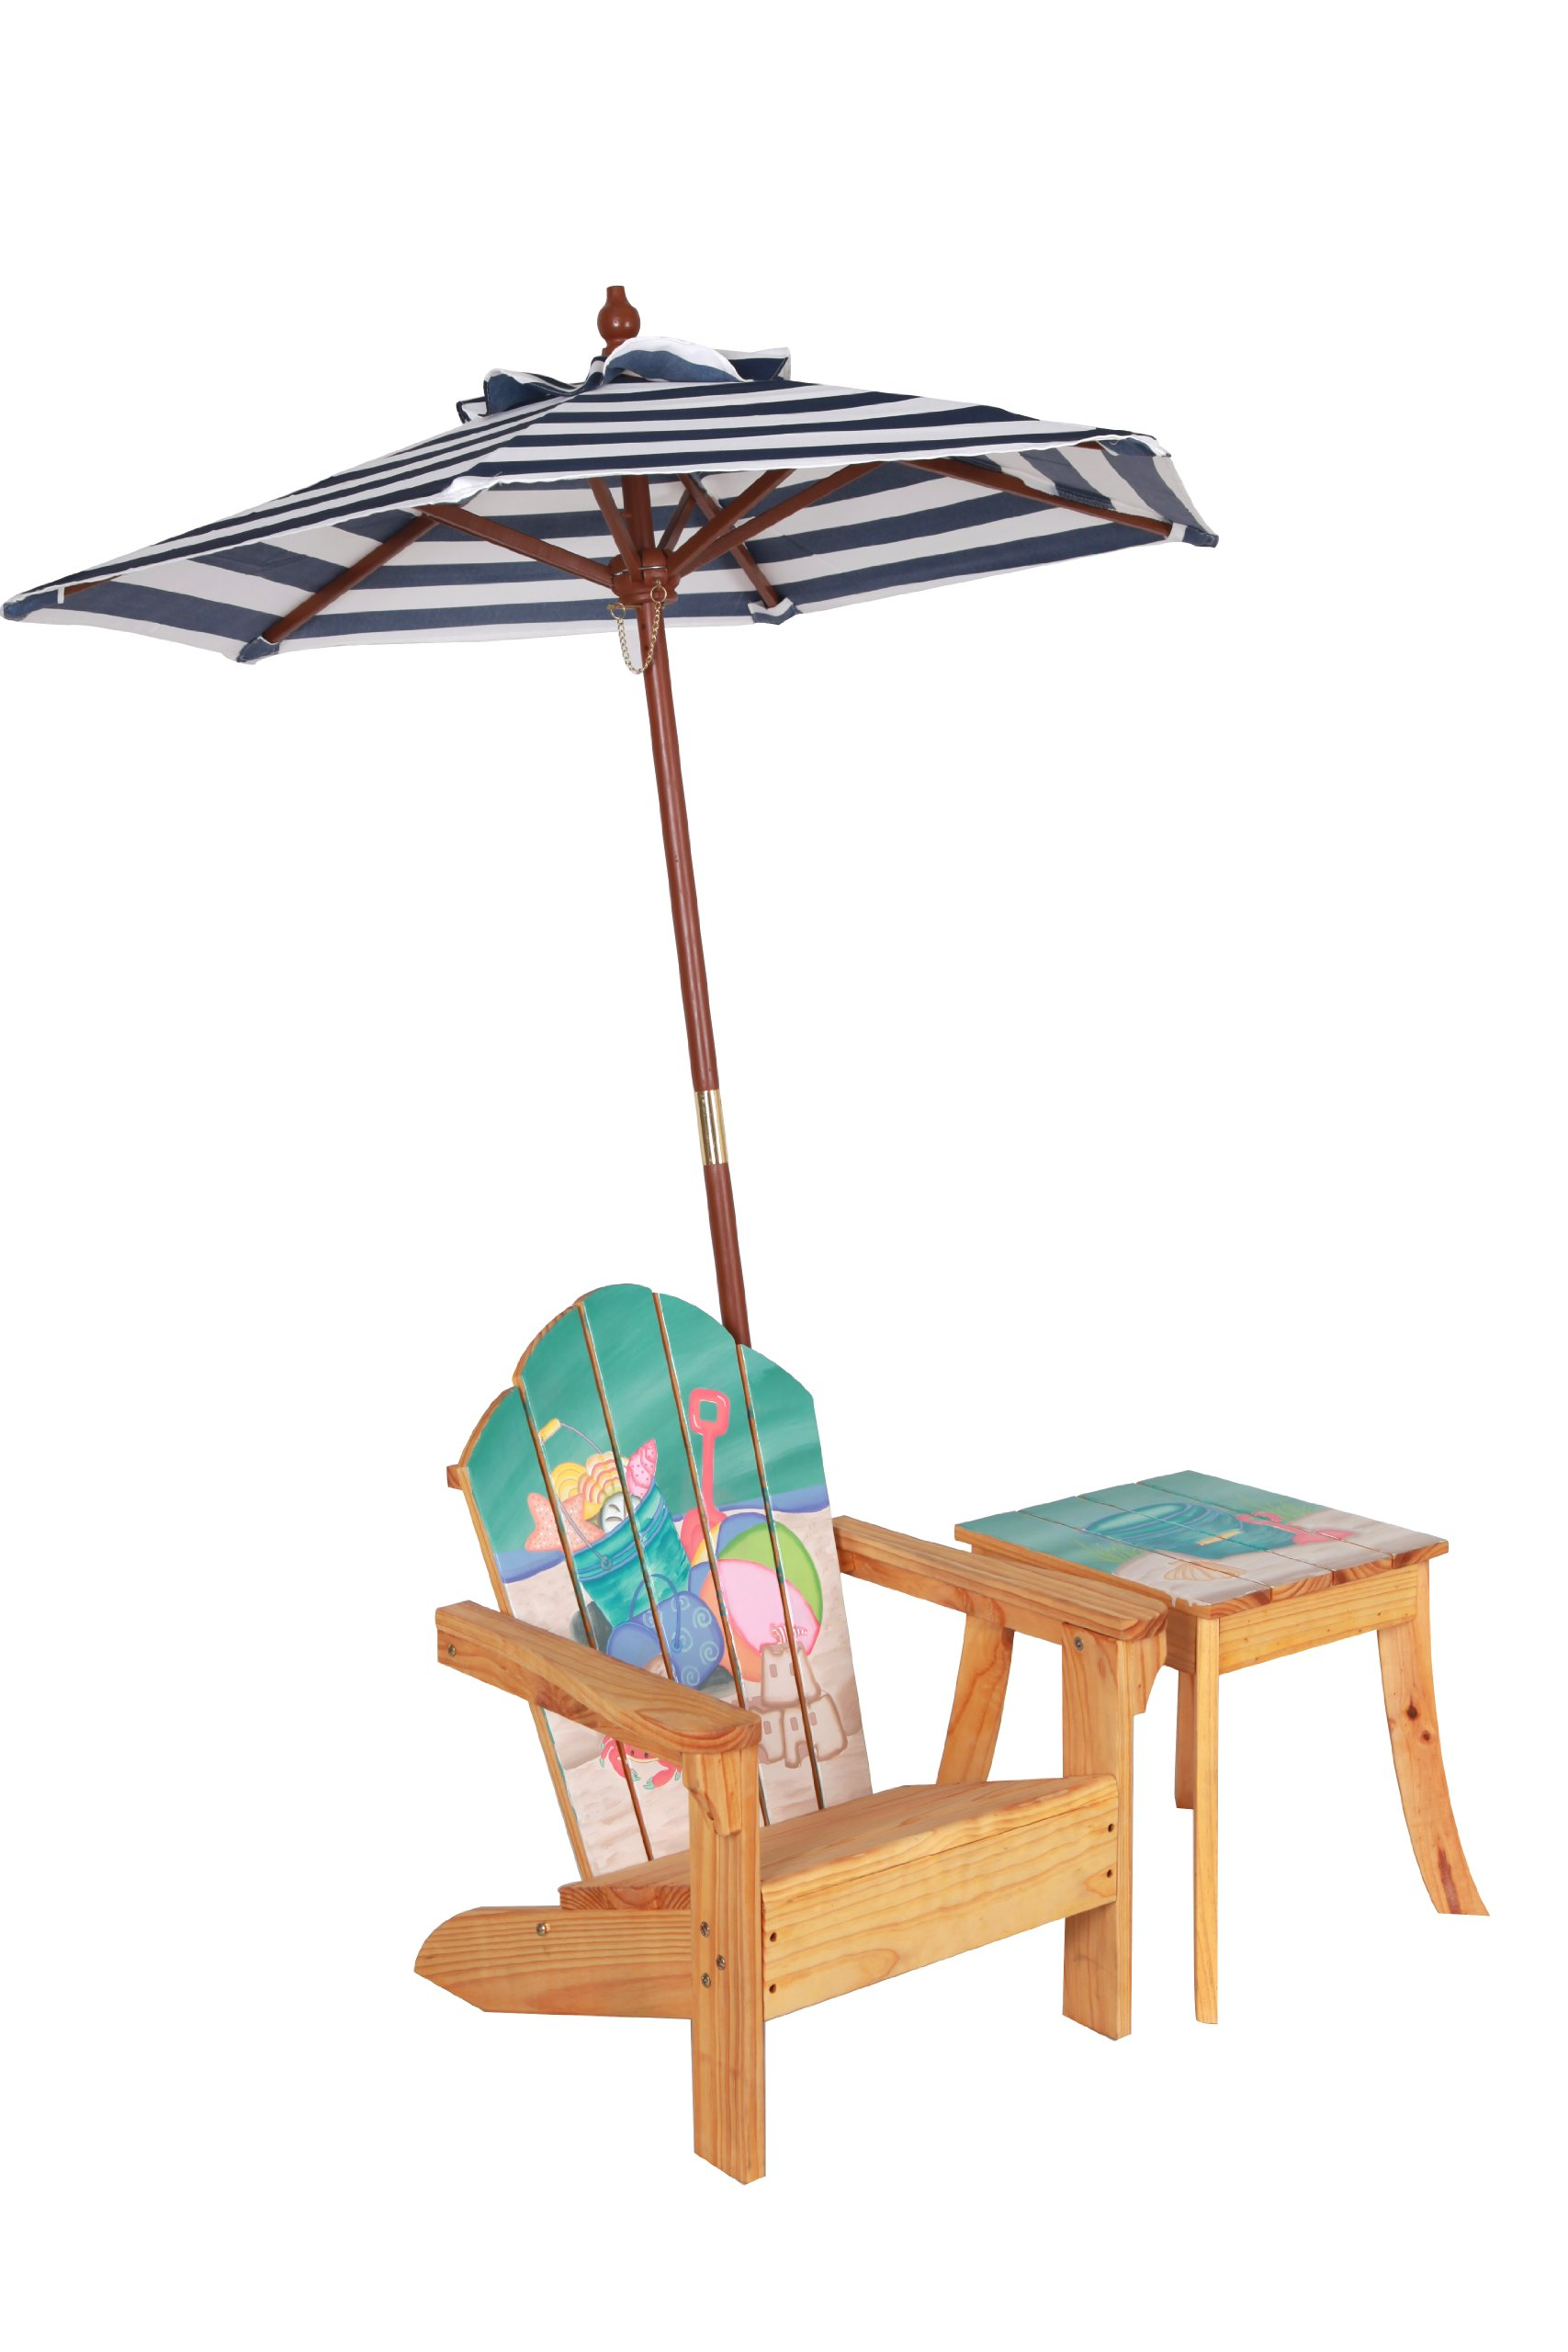 Teamson Design Corp Winland - Outdoor Table and Adirondack Chair Set with Unbrella - Beach Summer